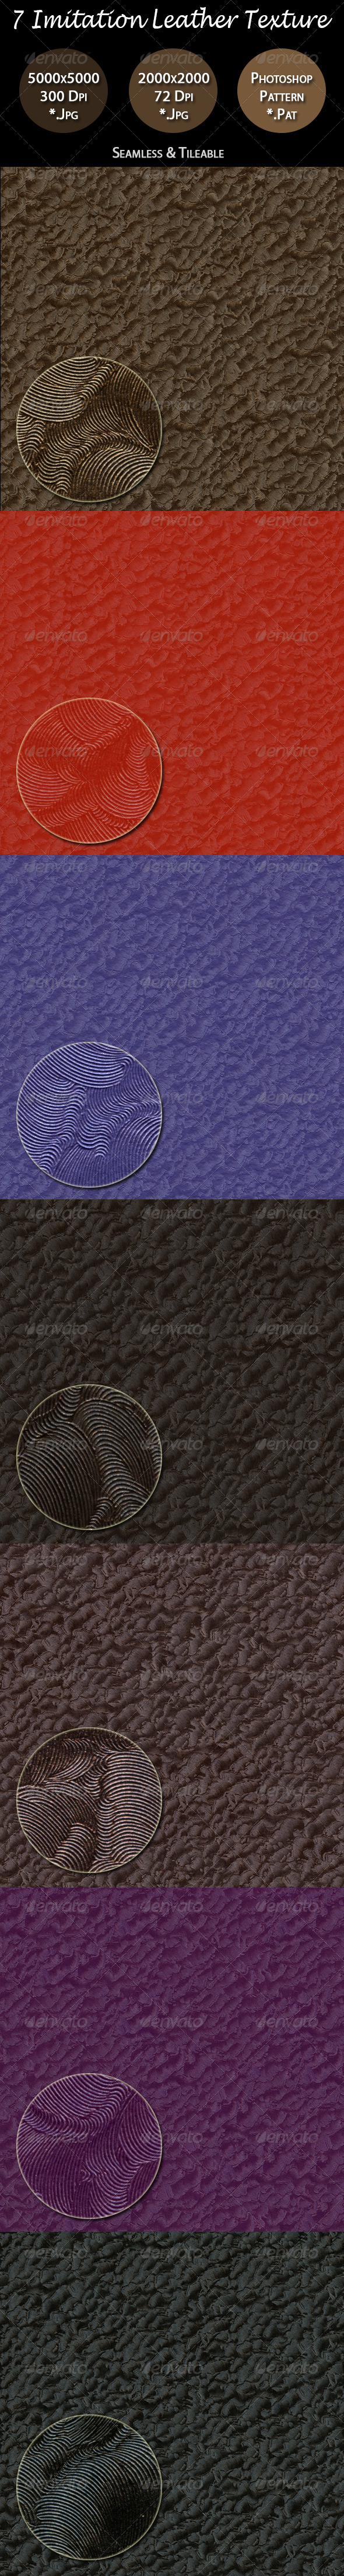 7 Imitation Leather Texture Pack - Fabric Textures